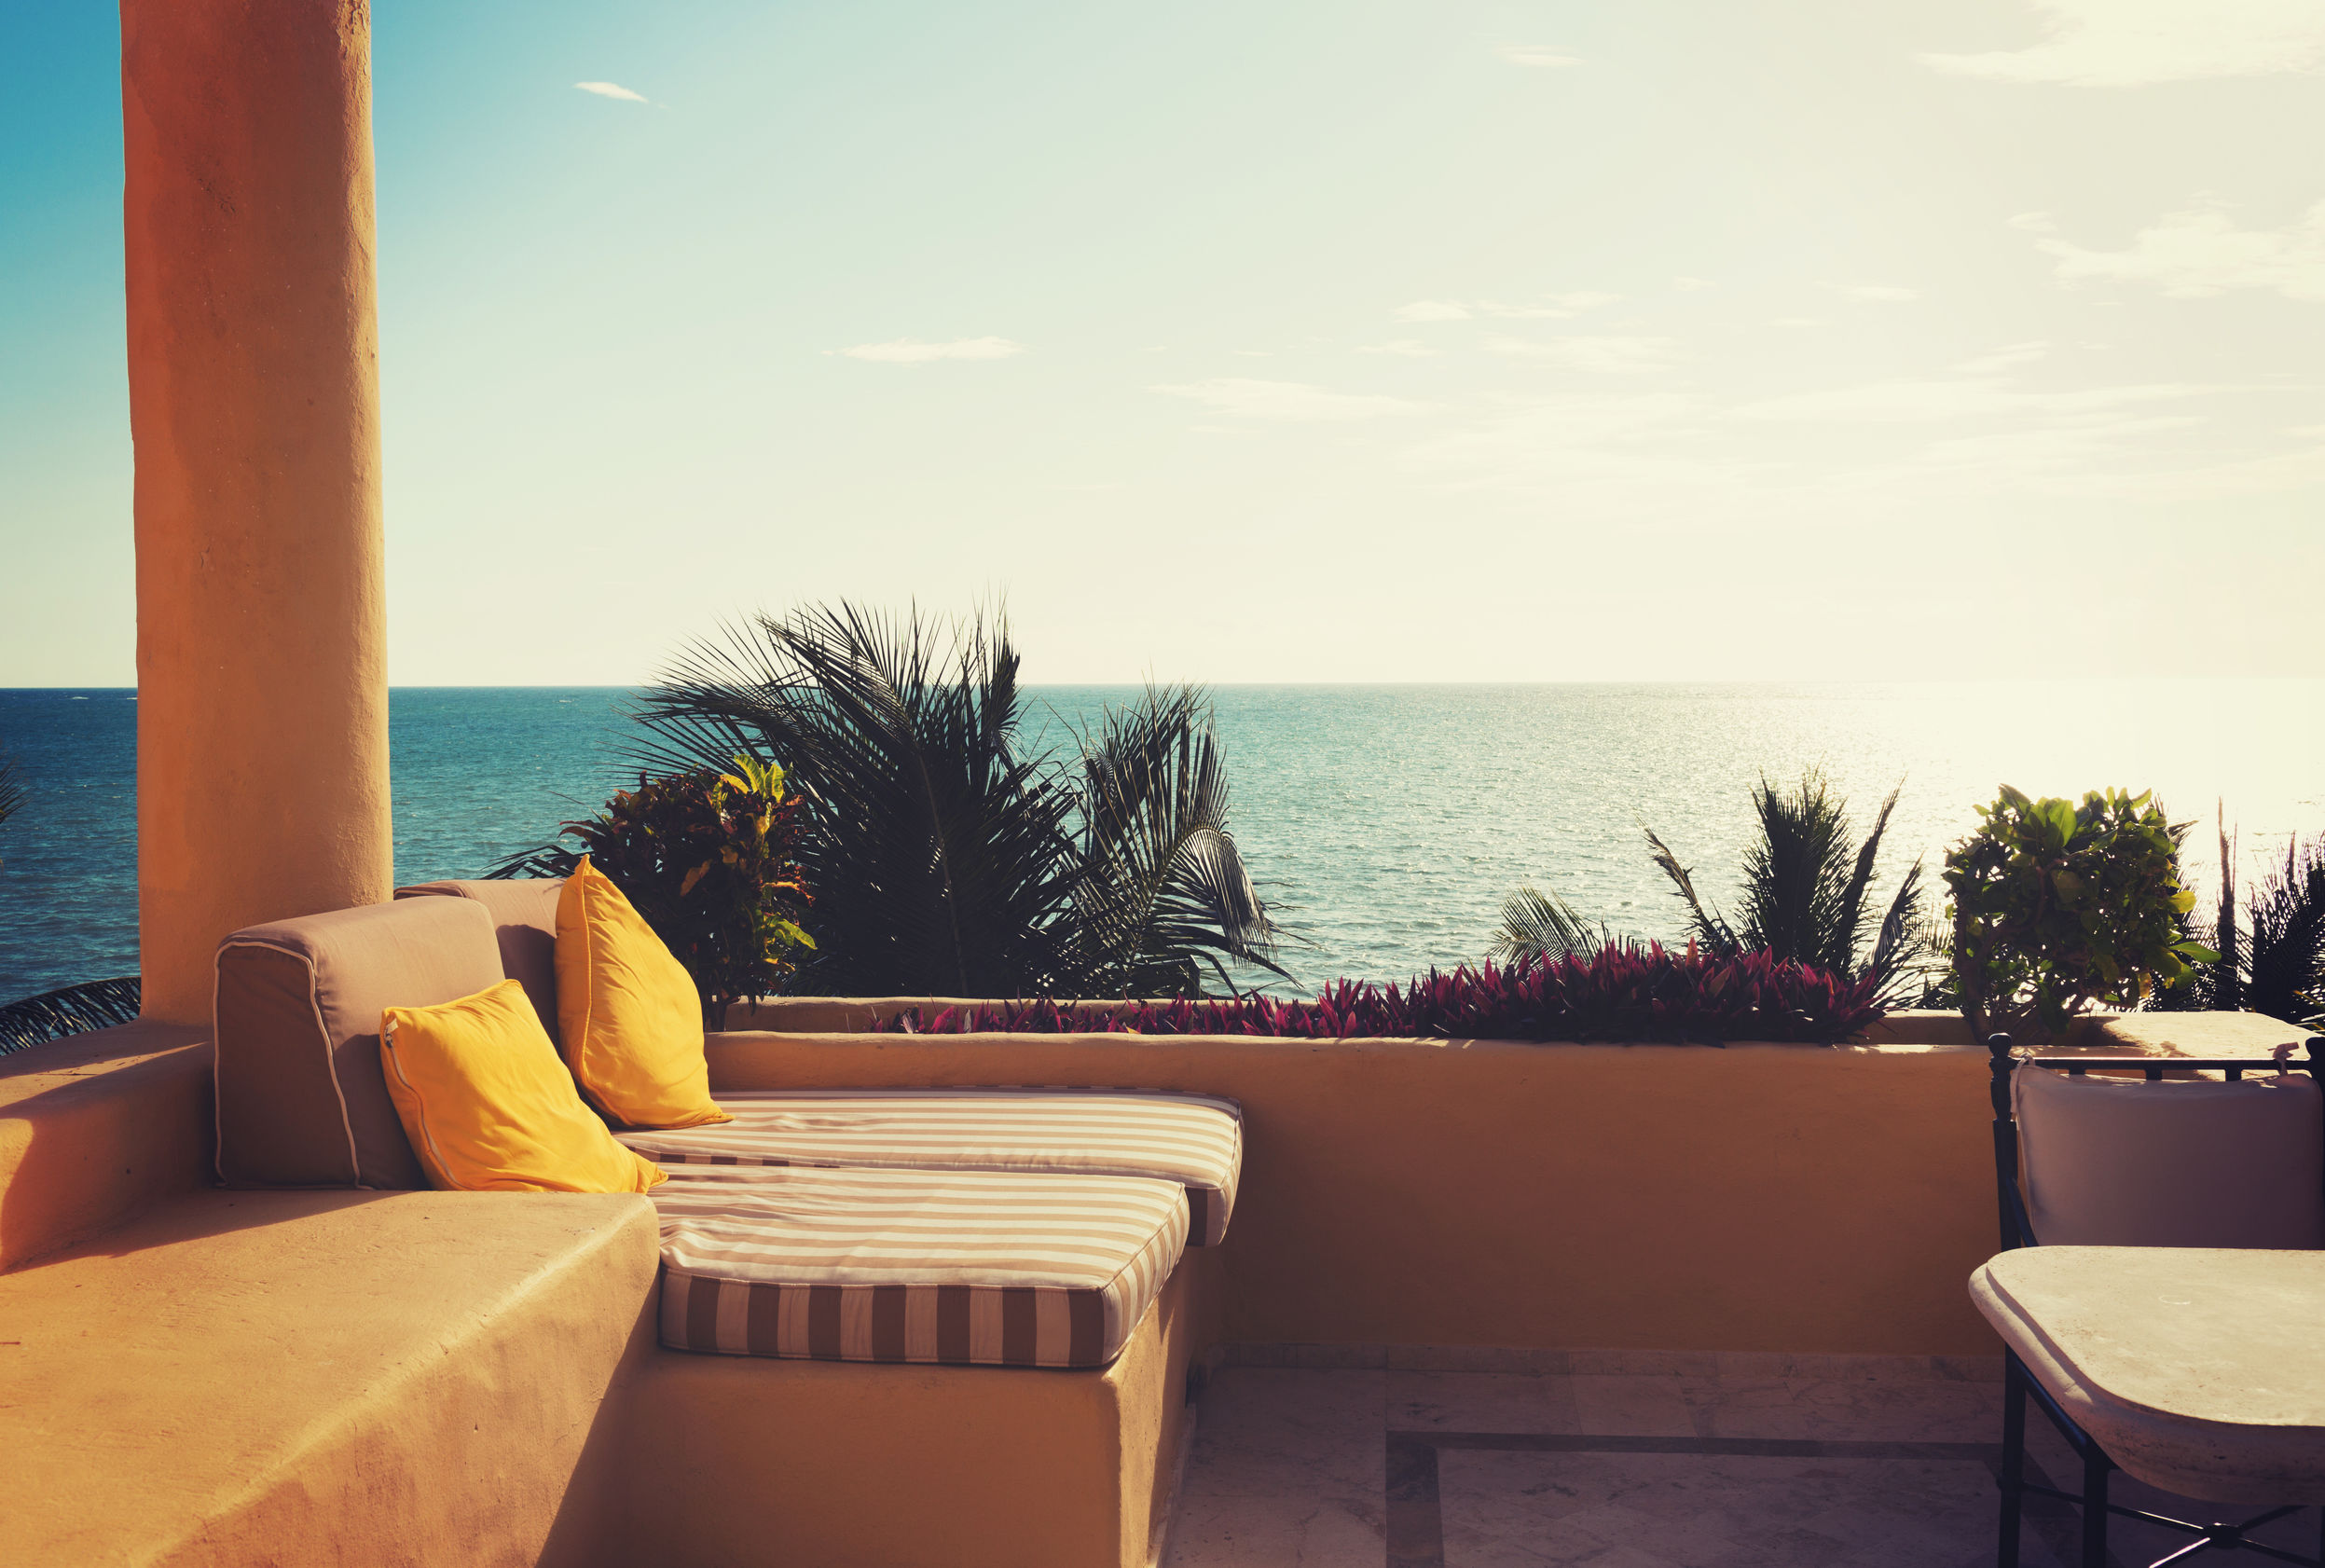 4 Summer Safety Tips for Enjoying Your Patio